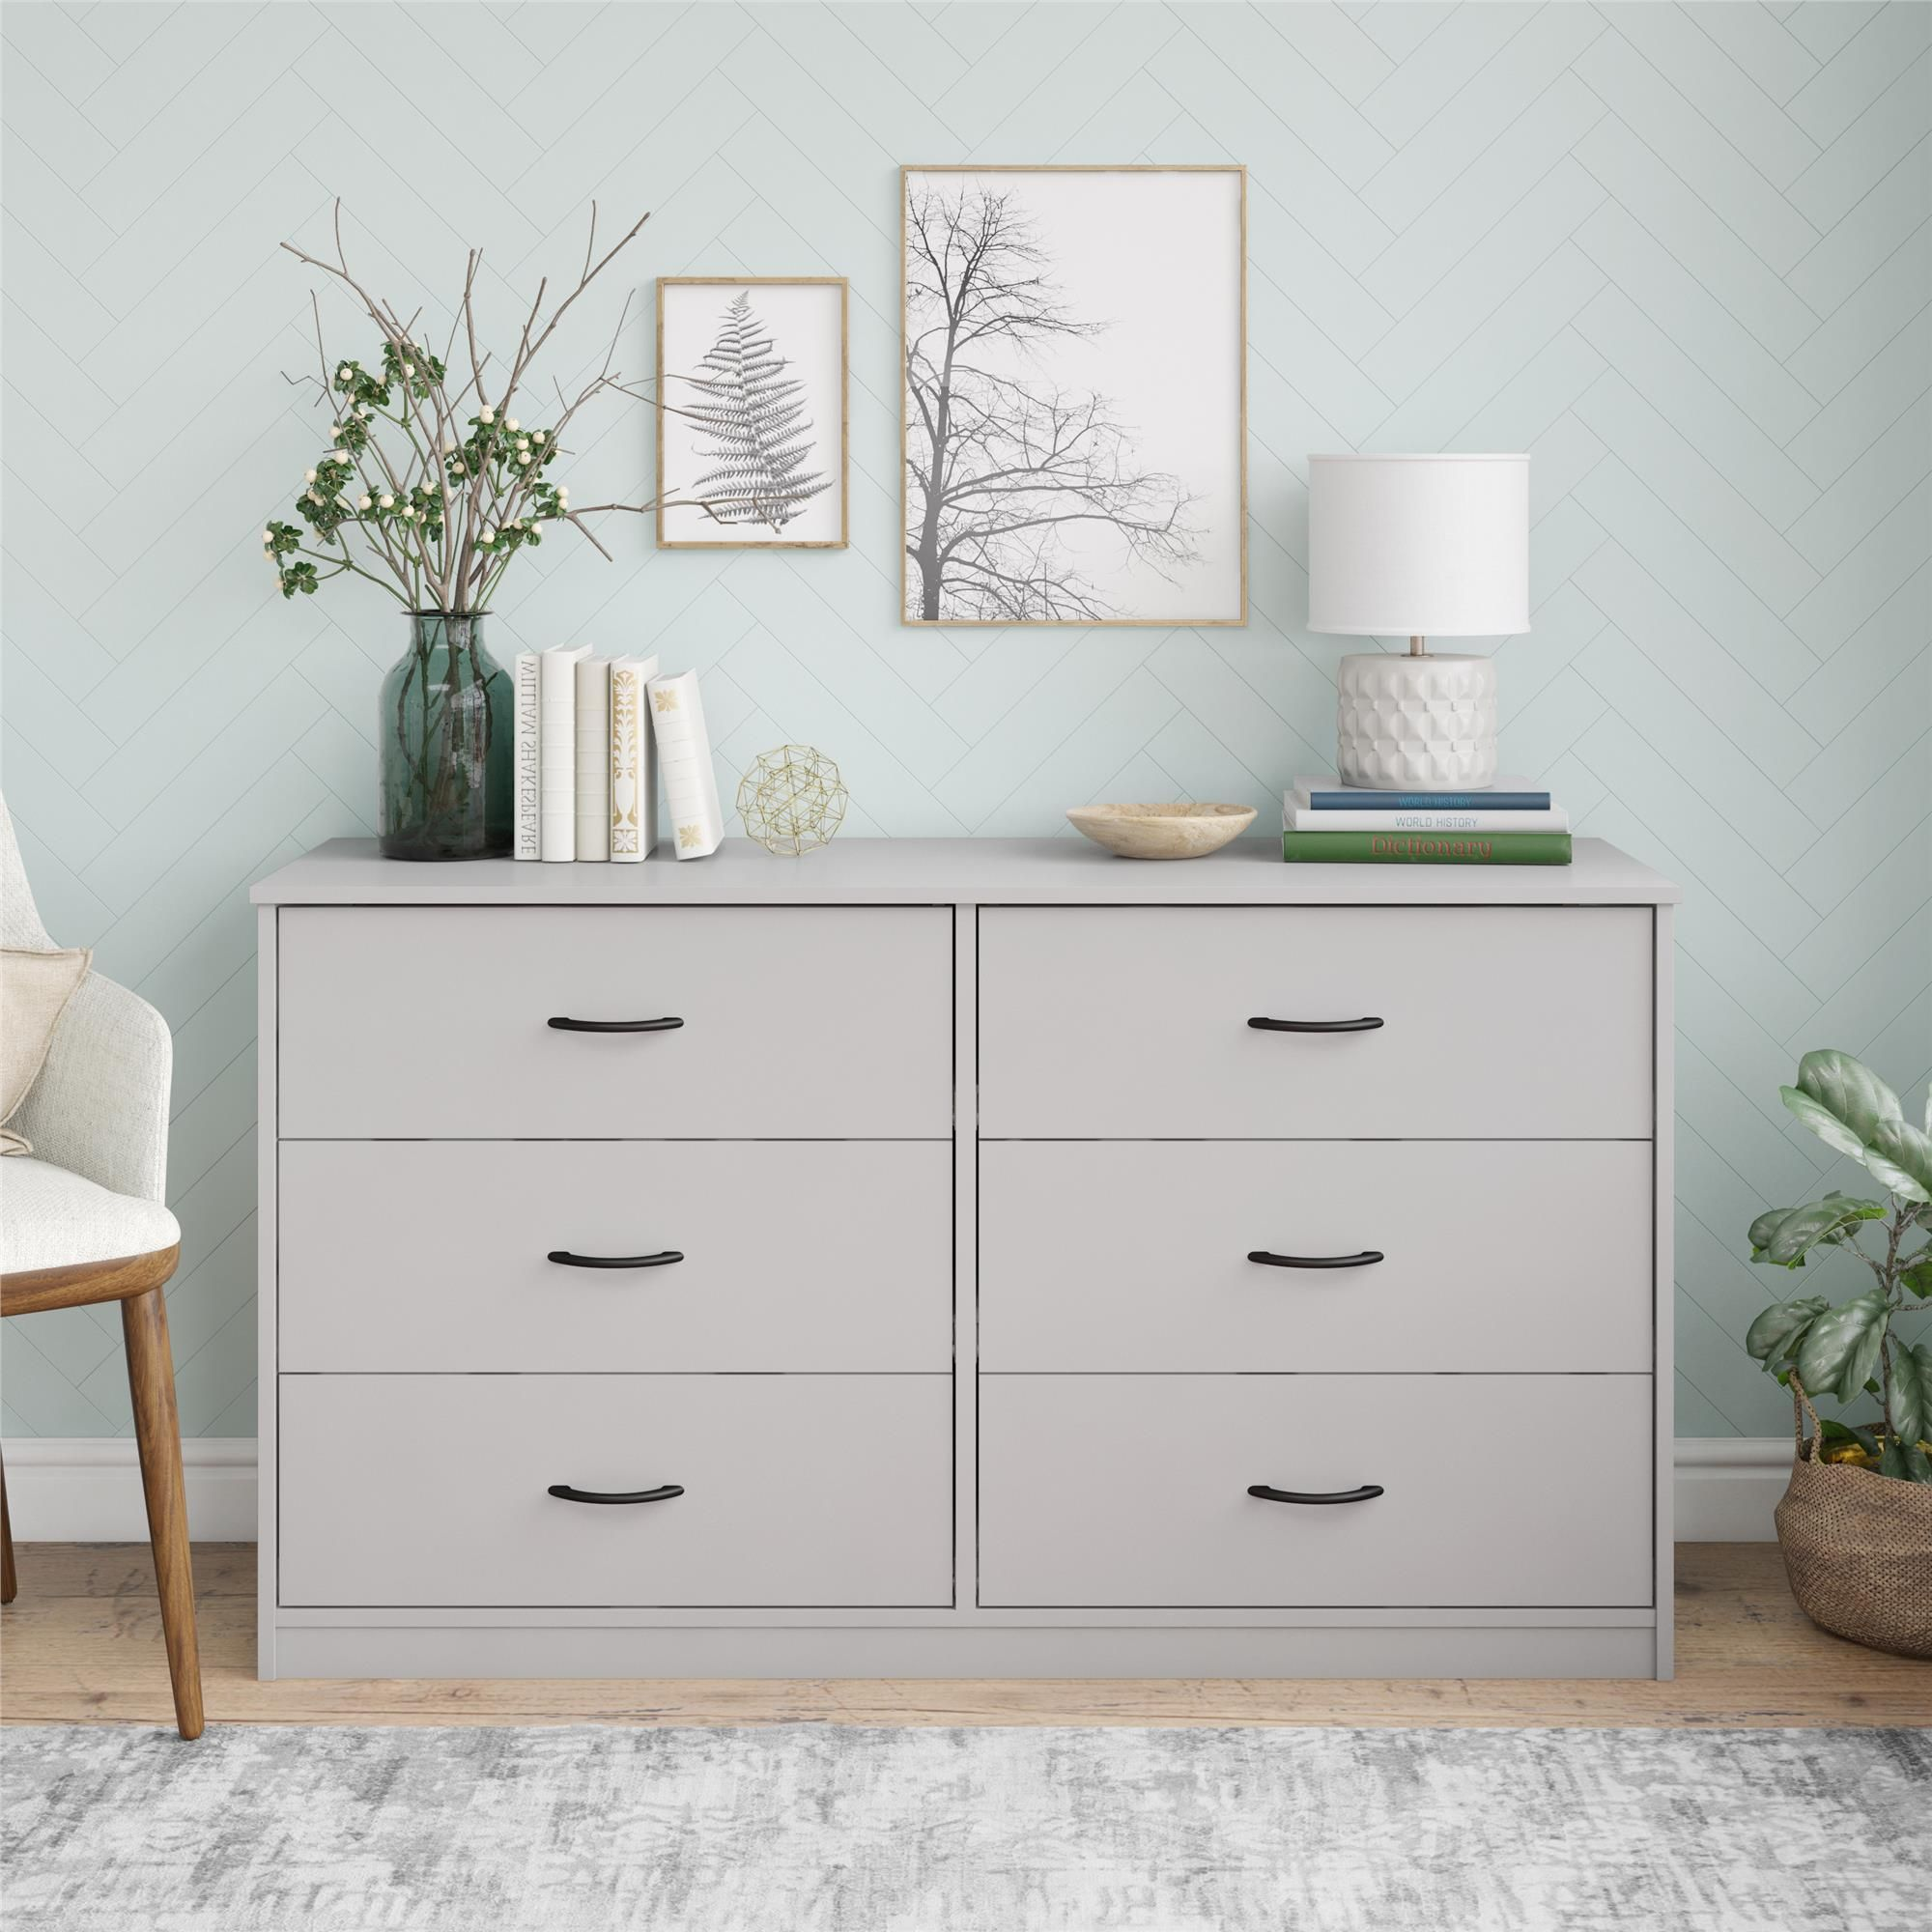 Mainstays Classic 6 Drawer Dresser Dove Gray Walmart Com In 2020 Dresser Drawers 6 Drawer Dresser Living Room Cabinets [ 2000 x 2000 Pixel ]